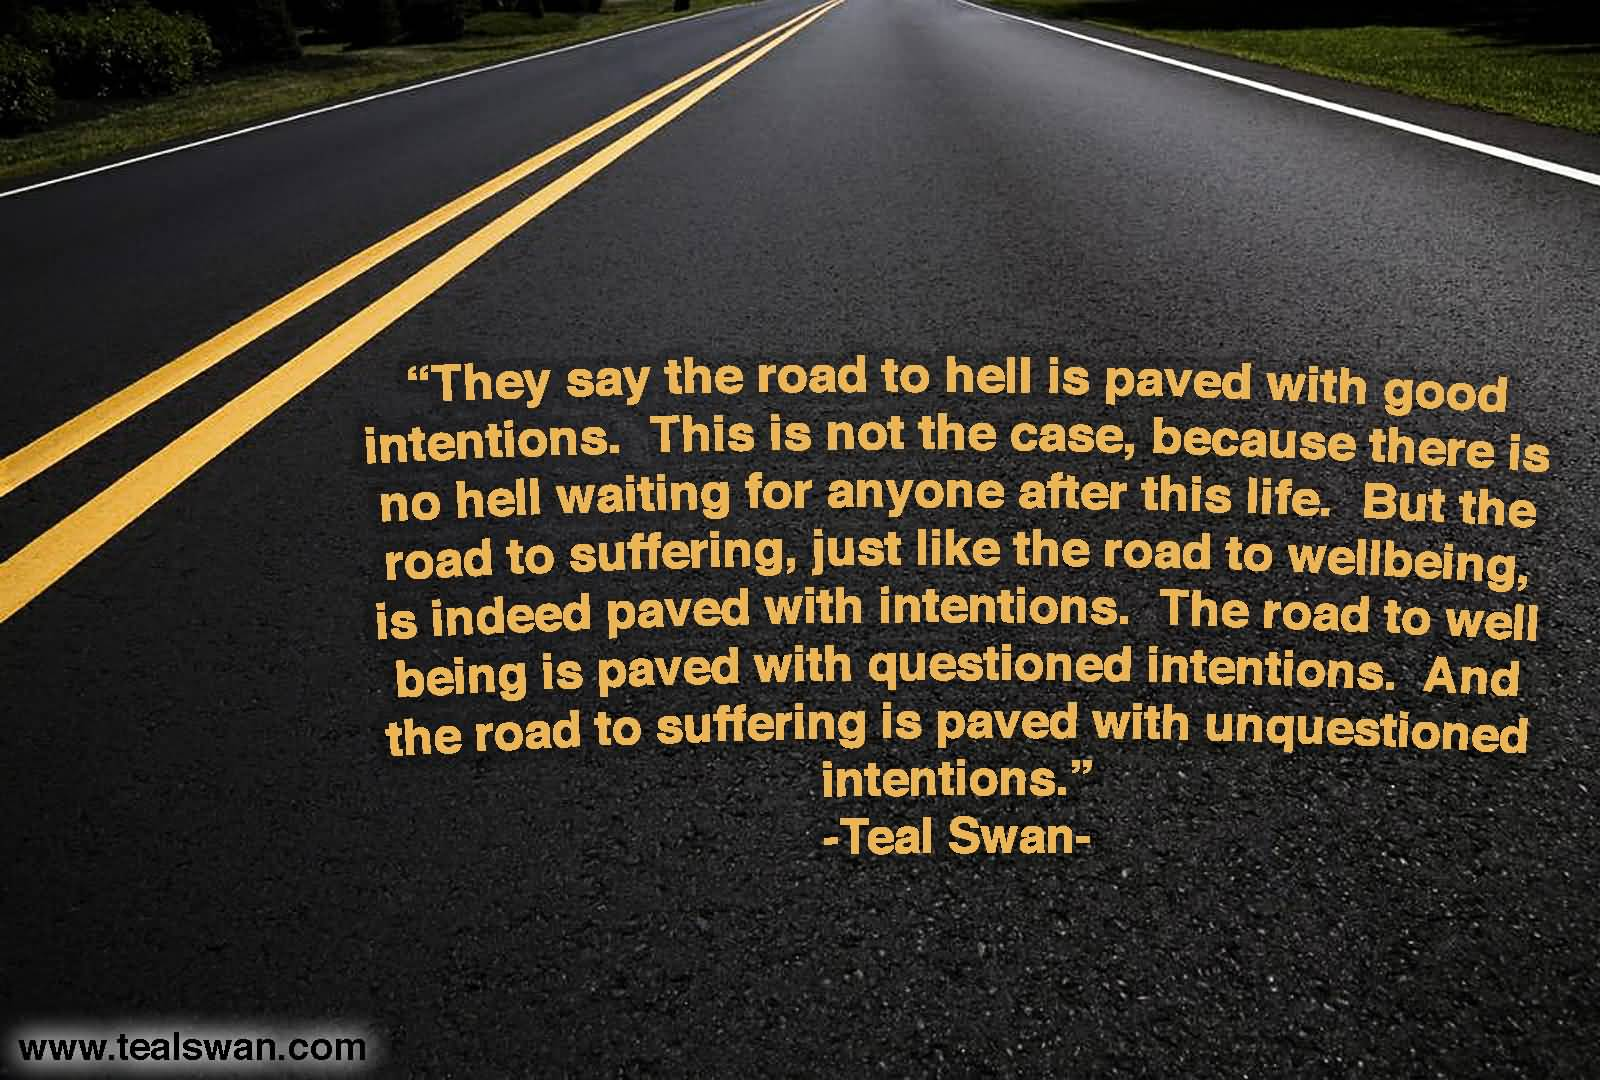 They say the road to hell is paved with good intentions. This is not the case, because there is no hell waiting for anyone after this life. But the road to suffering, just like the road to well being, is indeed paved with intentions. The road to well being is paved with questioned intentions. And the road to suffering is paved with unquestioned intentions.